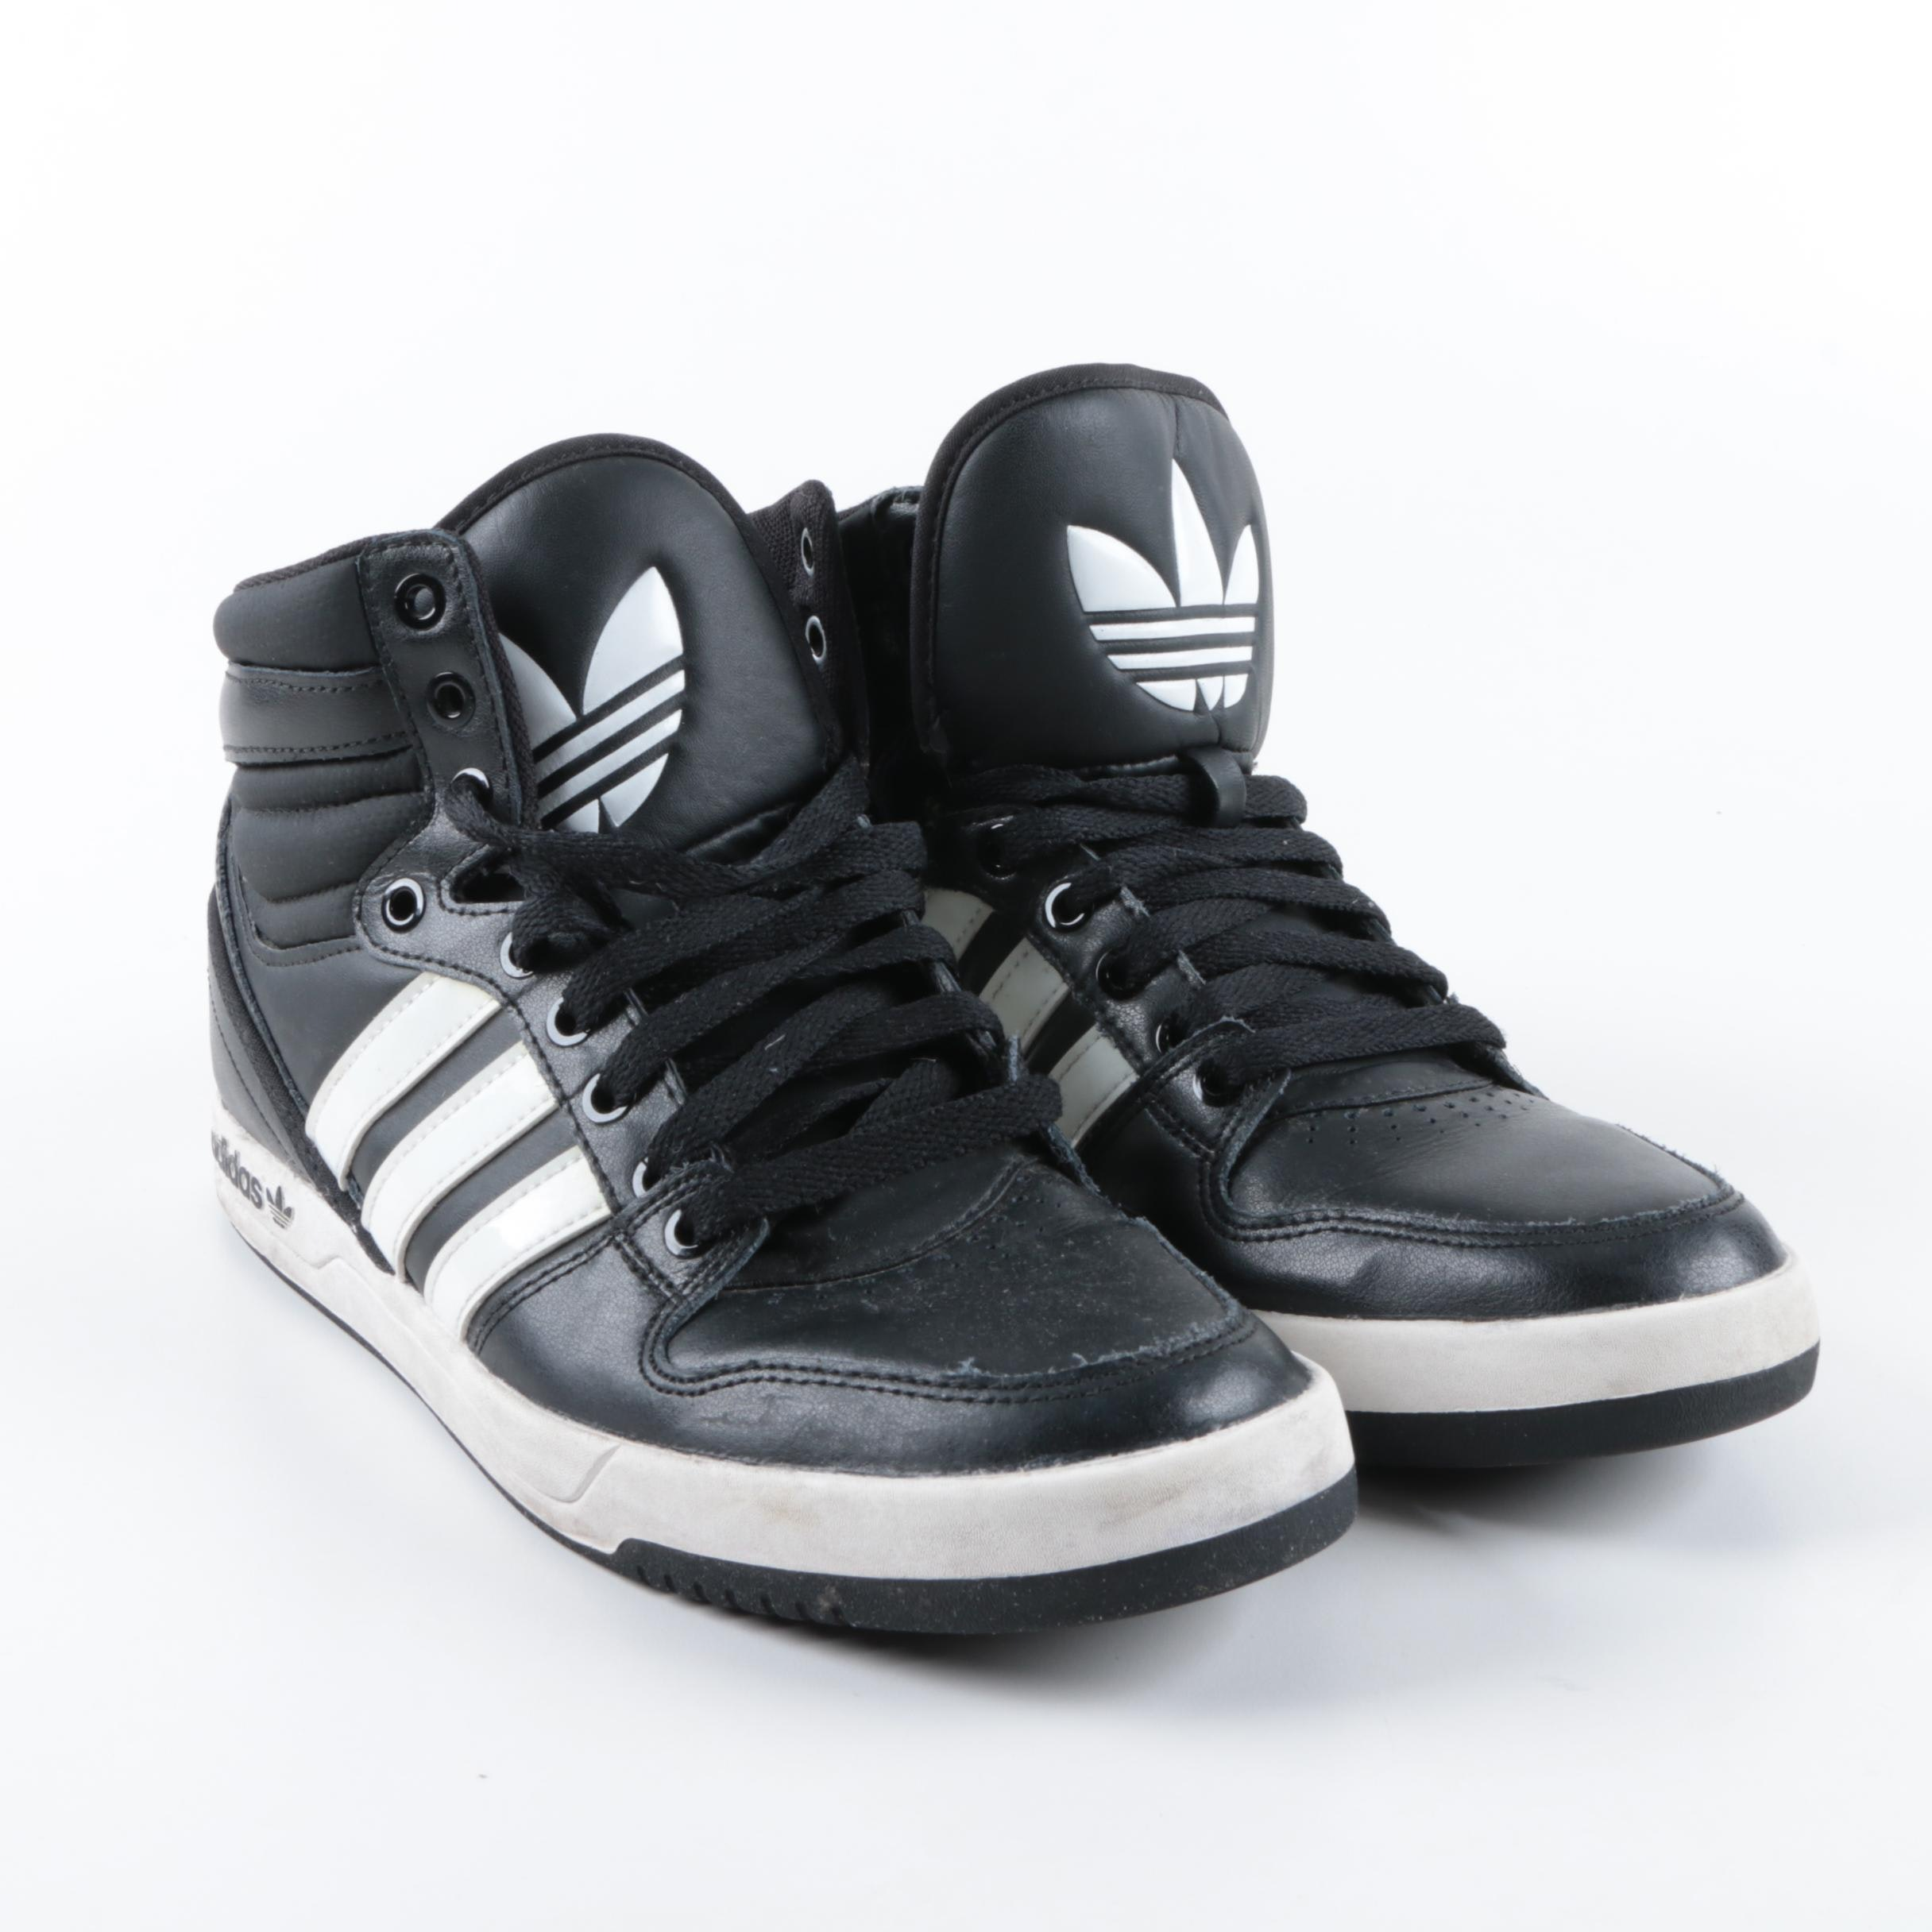 Men's Adidas Originals Court Attitude High Top Sneakers